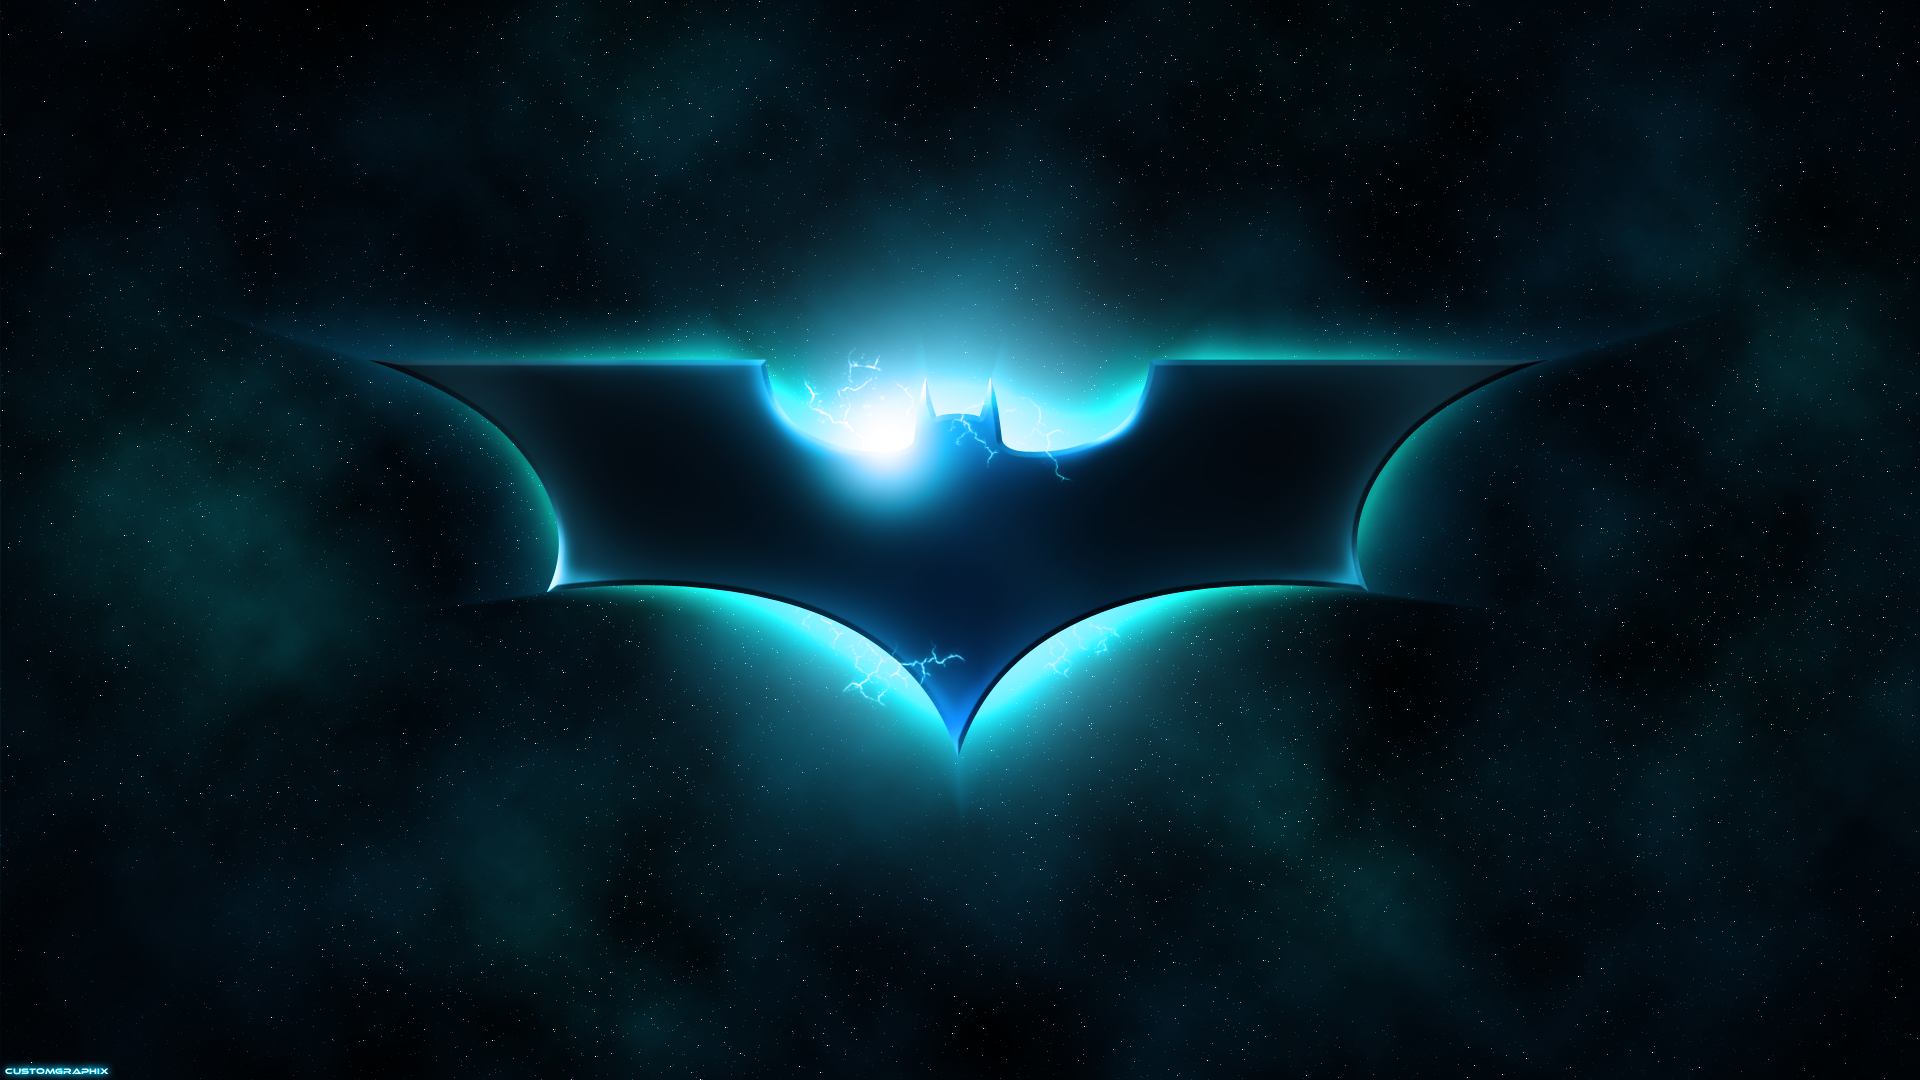 The Dark Knight Space By XCustomGraphix On DeviantArt